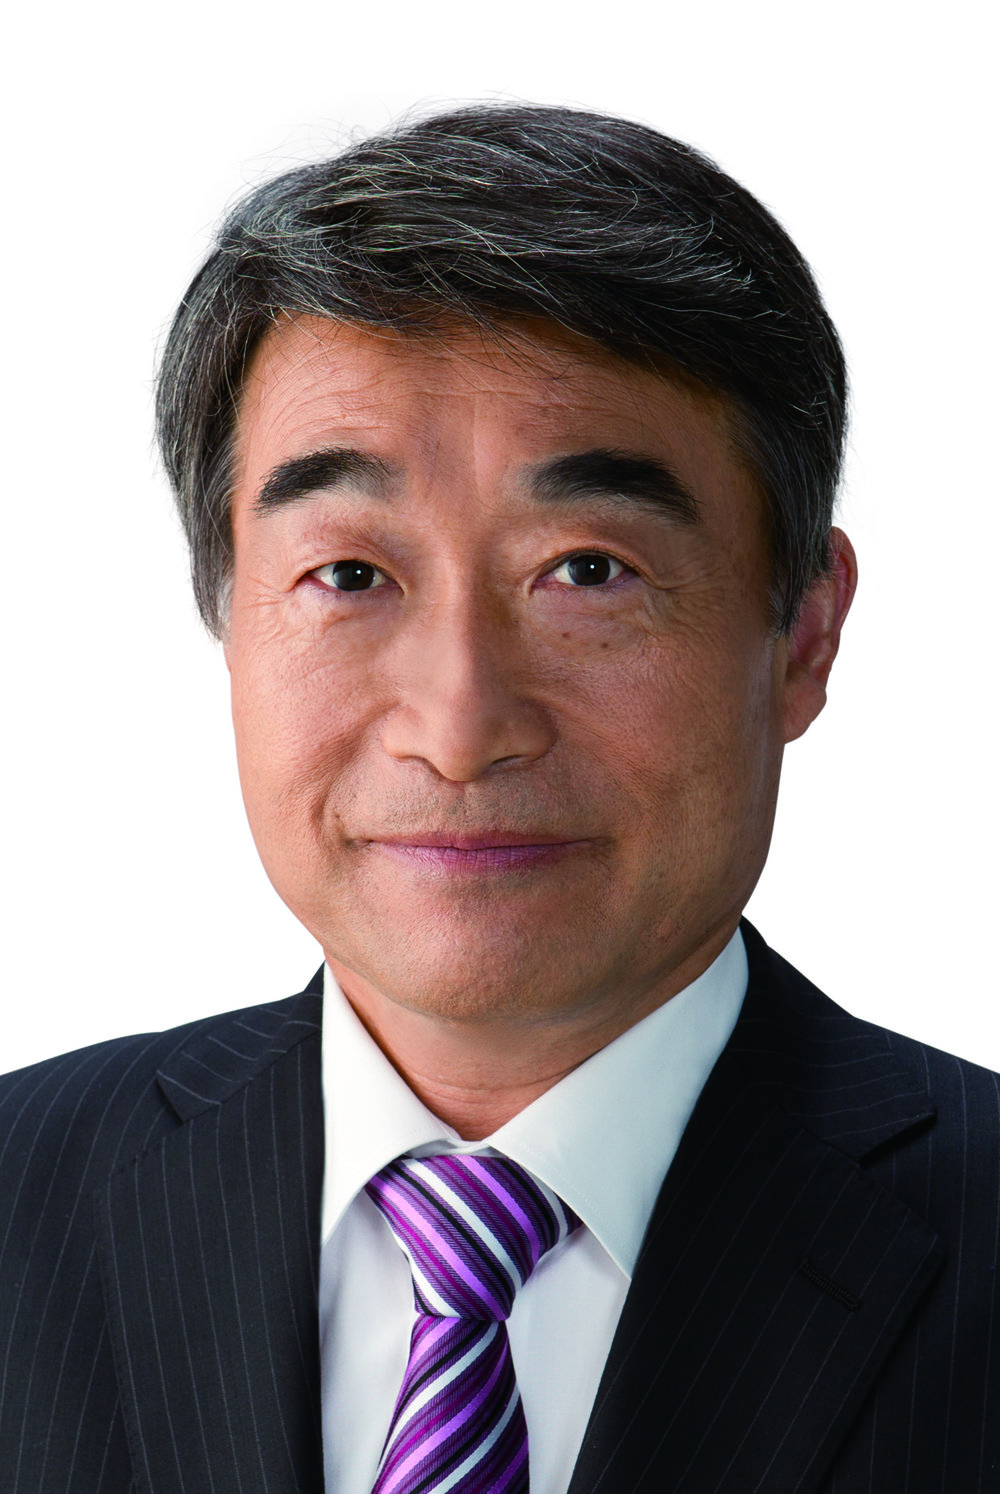 根本 匠 / Takumi NEMOTO  衆議院議員 自由民主党金融調査会長 元復興大臣 Member of House of Representatives Chairman,Research Commission on the Finance and Banking Systems,LDP Former Reconstruction Minister